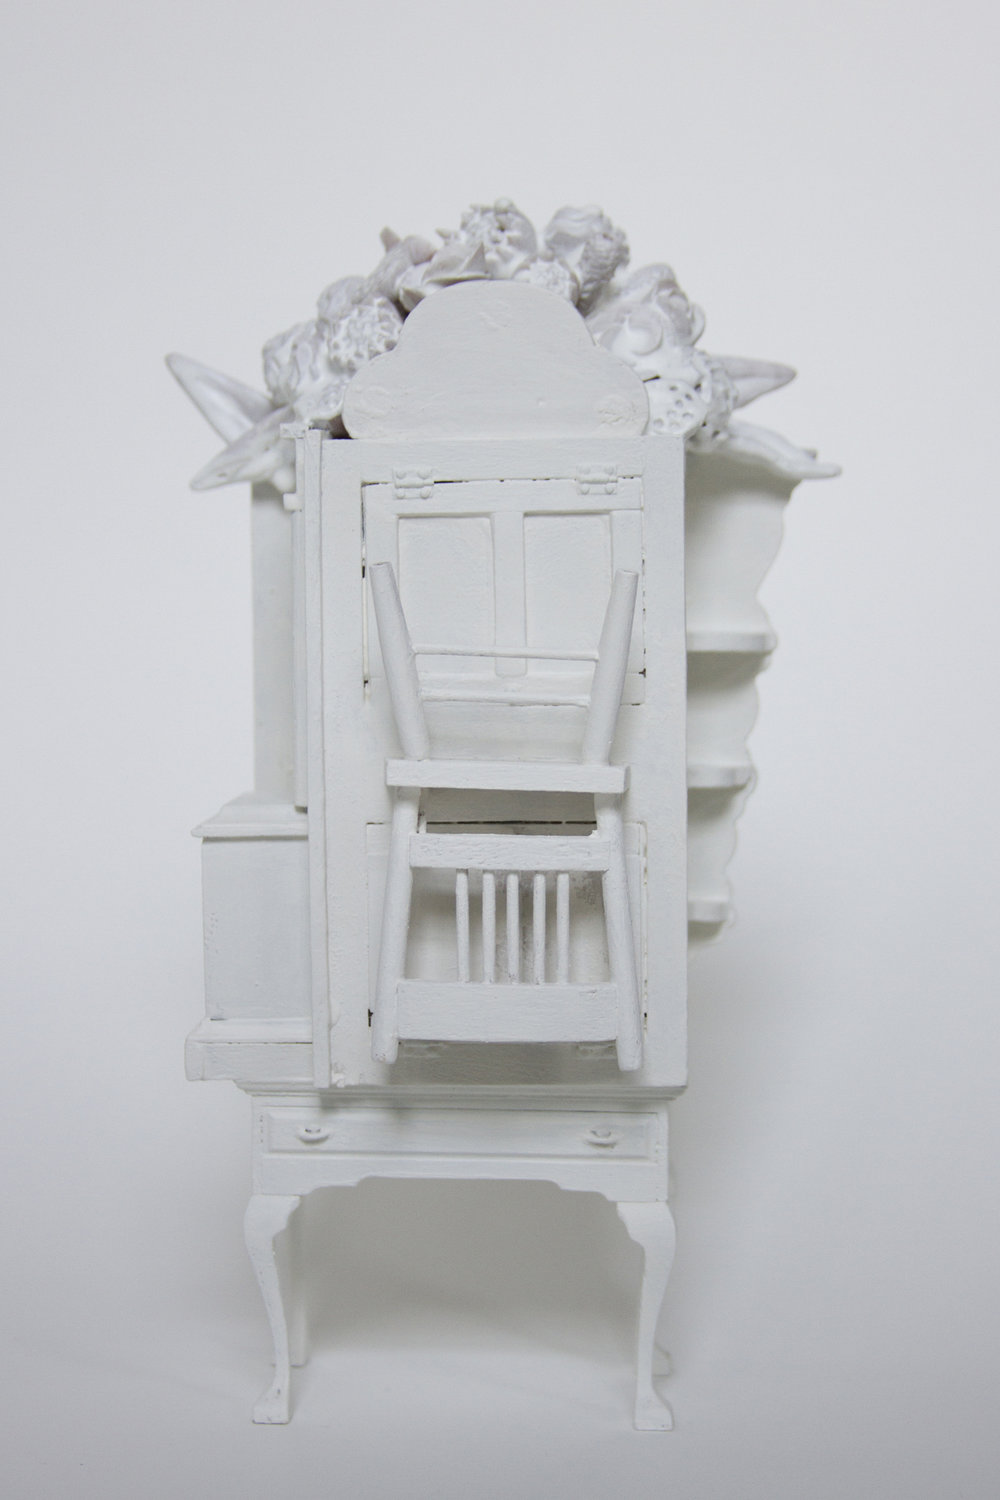 Chelsea Revelle,  Through the Keyhole: Fragility of Silence Series,  Dollhouse assemblage, 8x4.5x2